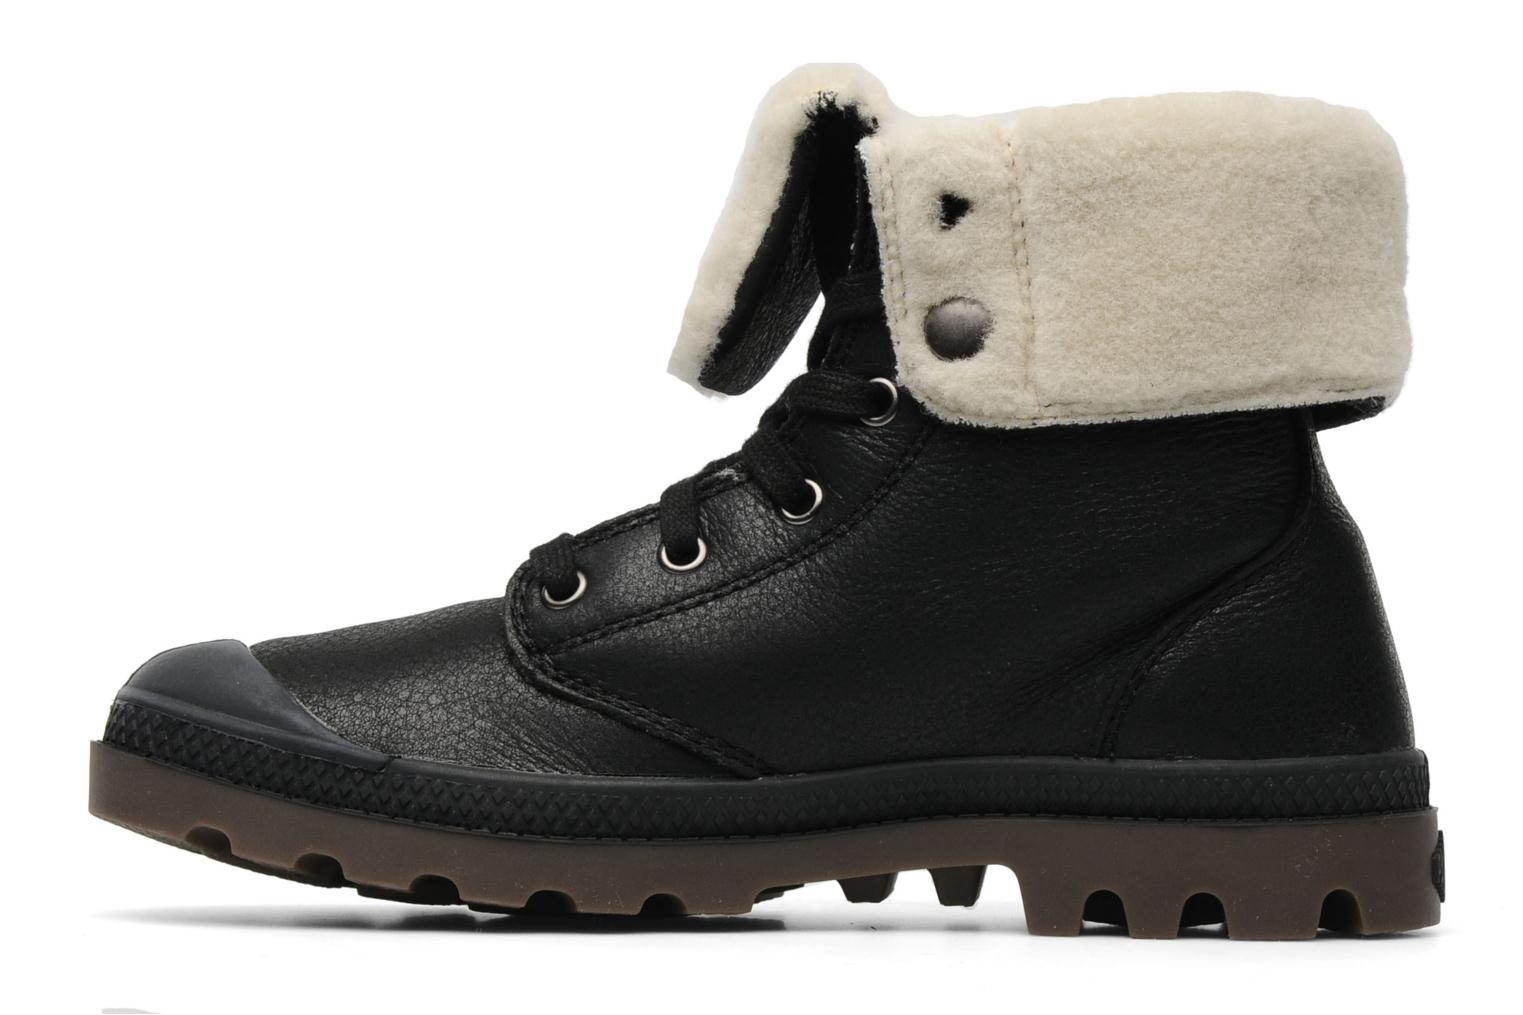 Bottines et boots Palladium Baggy ls w Noir vue face